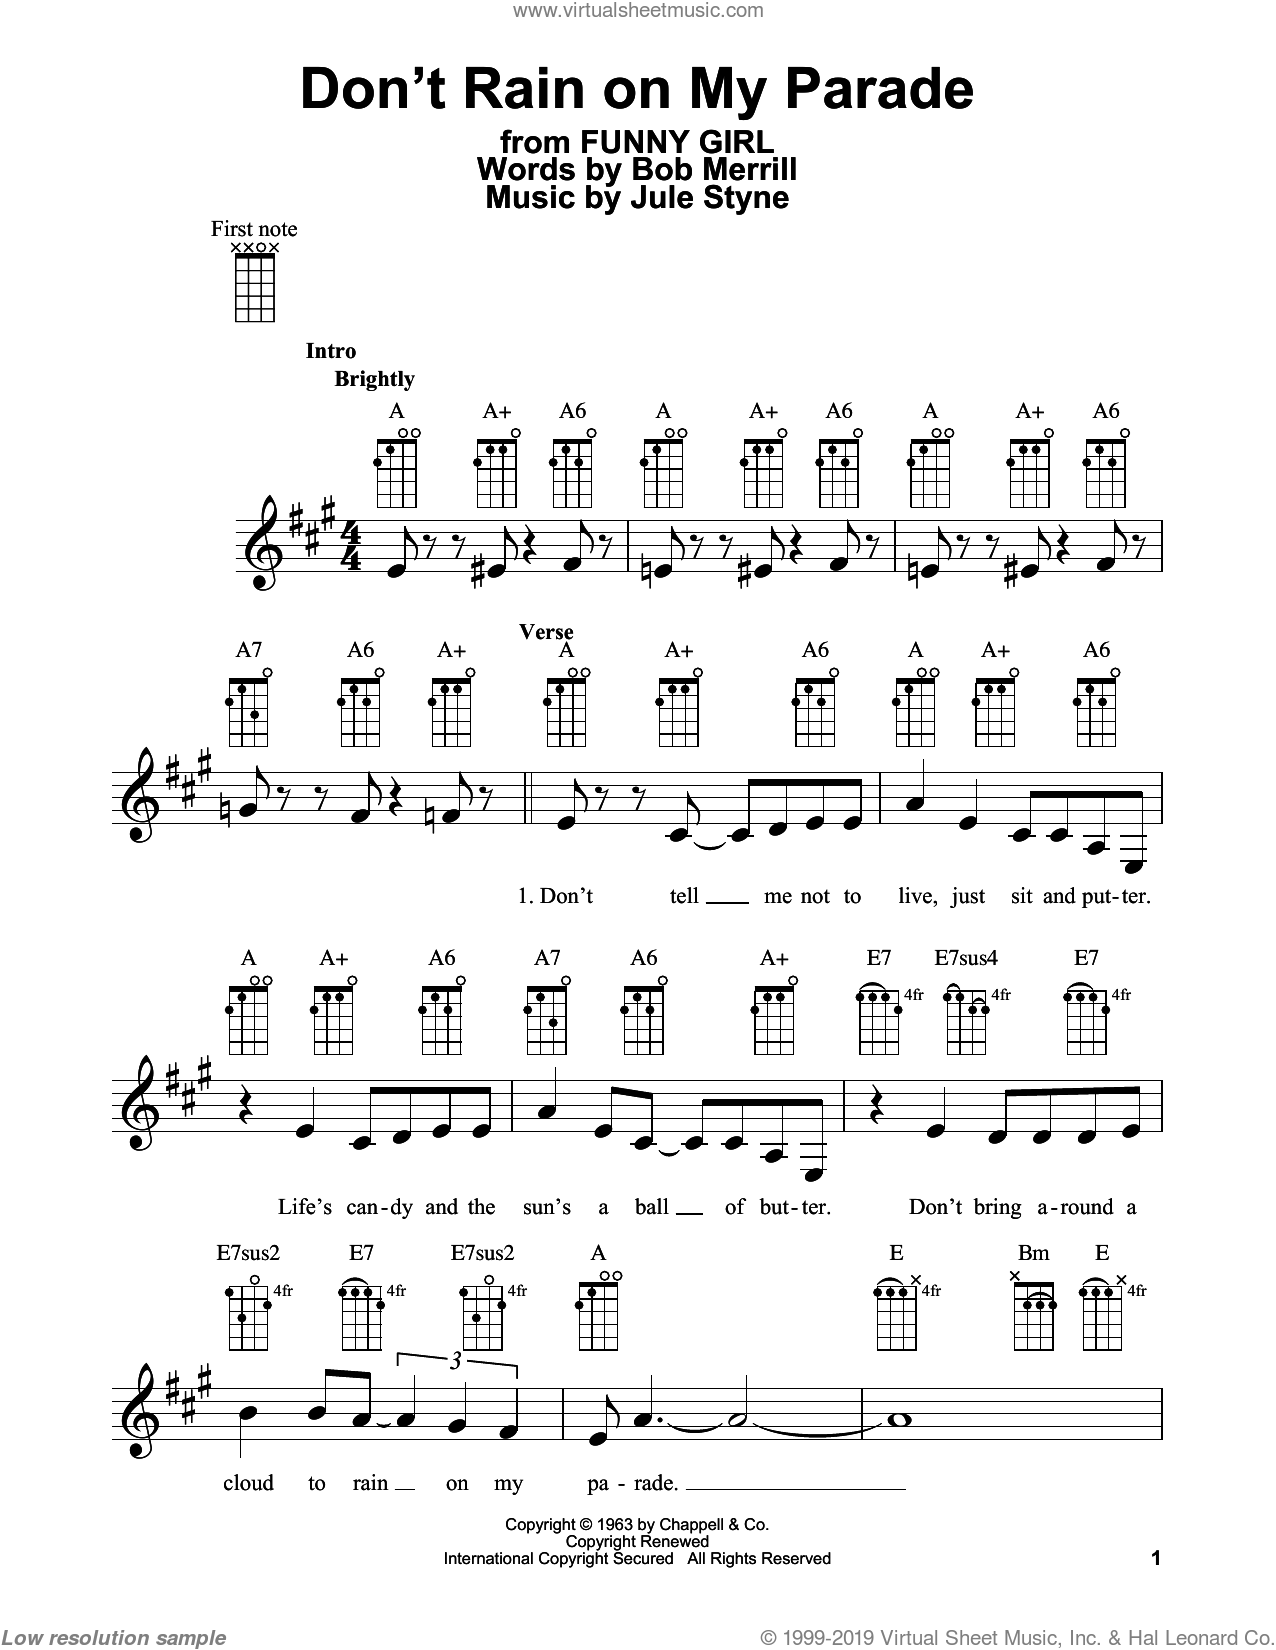 Don't Rain On My Parade sheet music for ukulele by Jule Styne